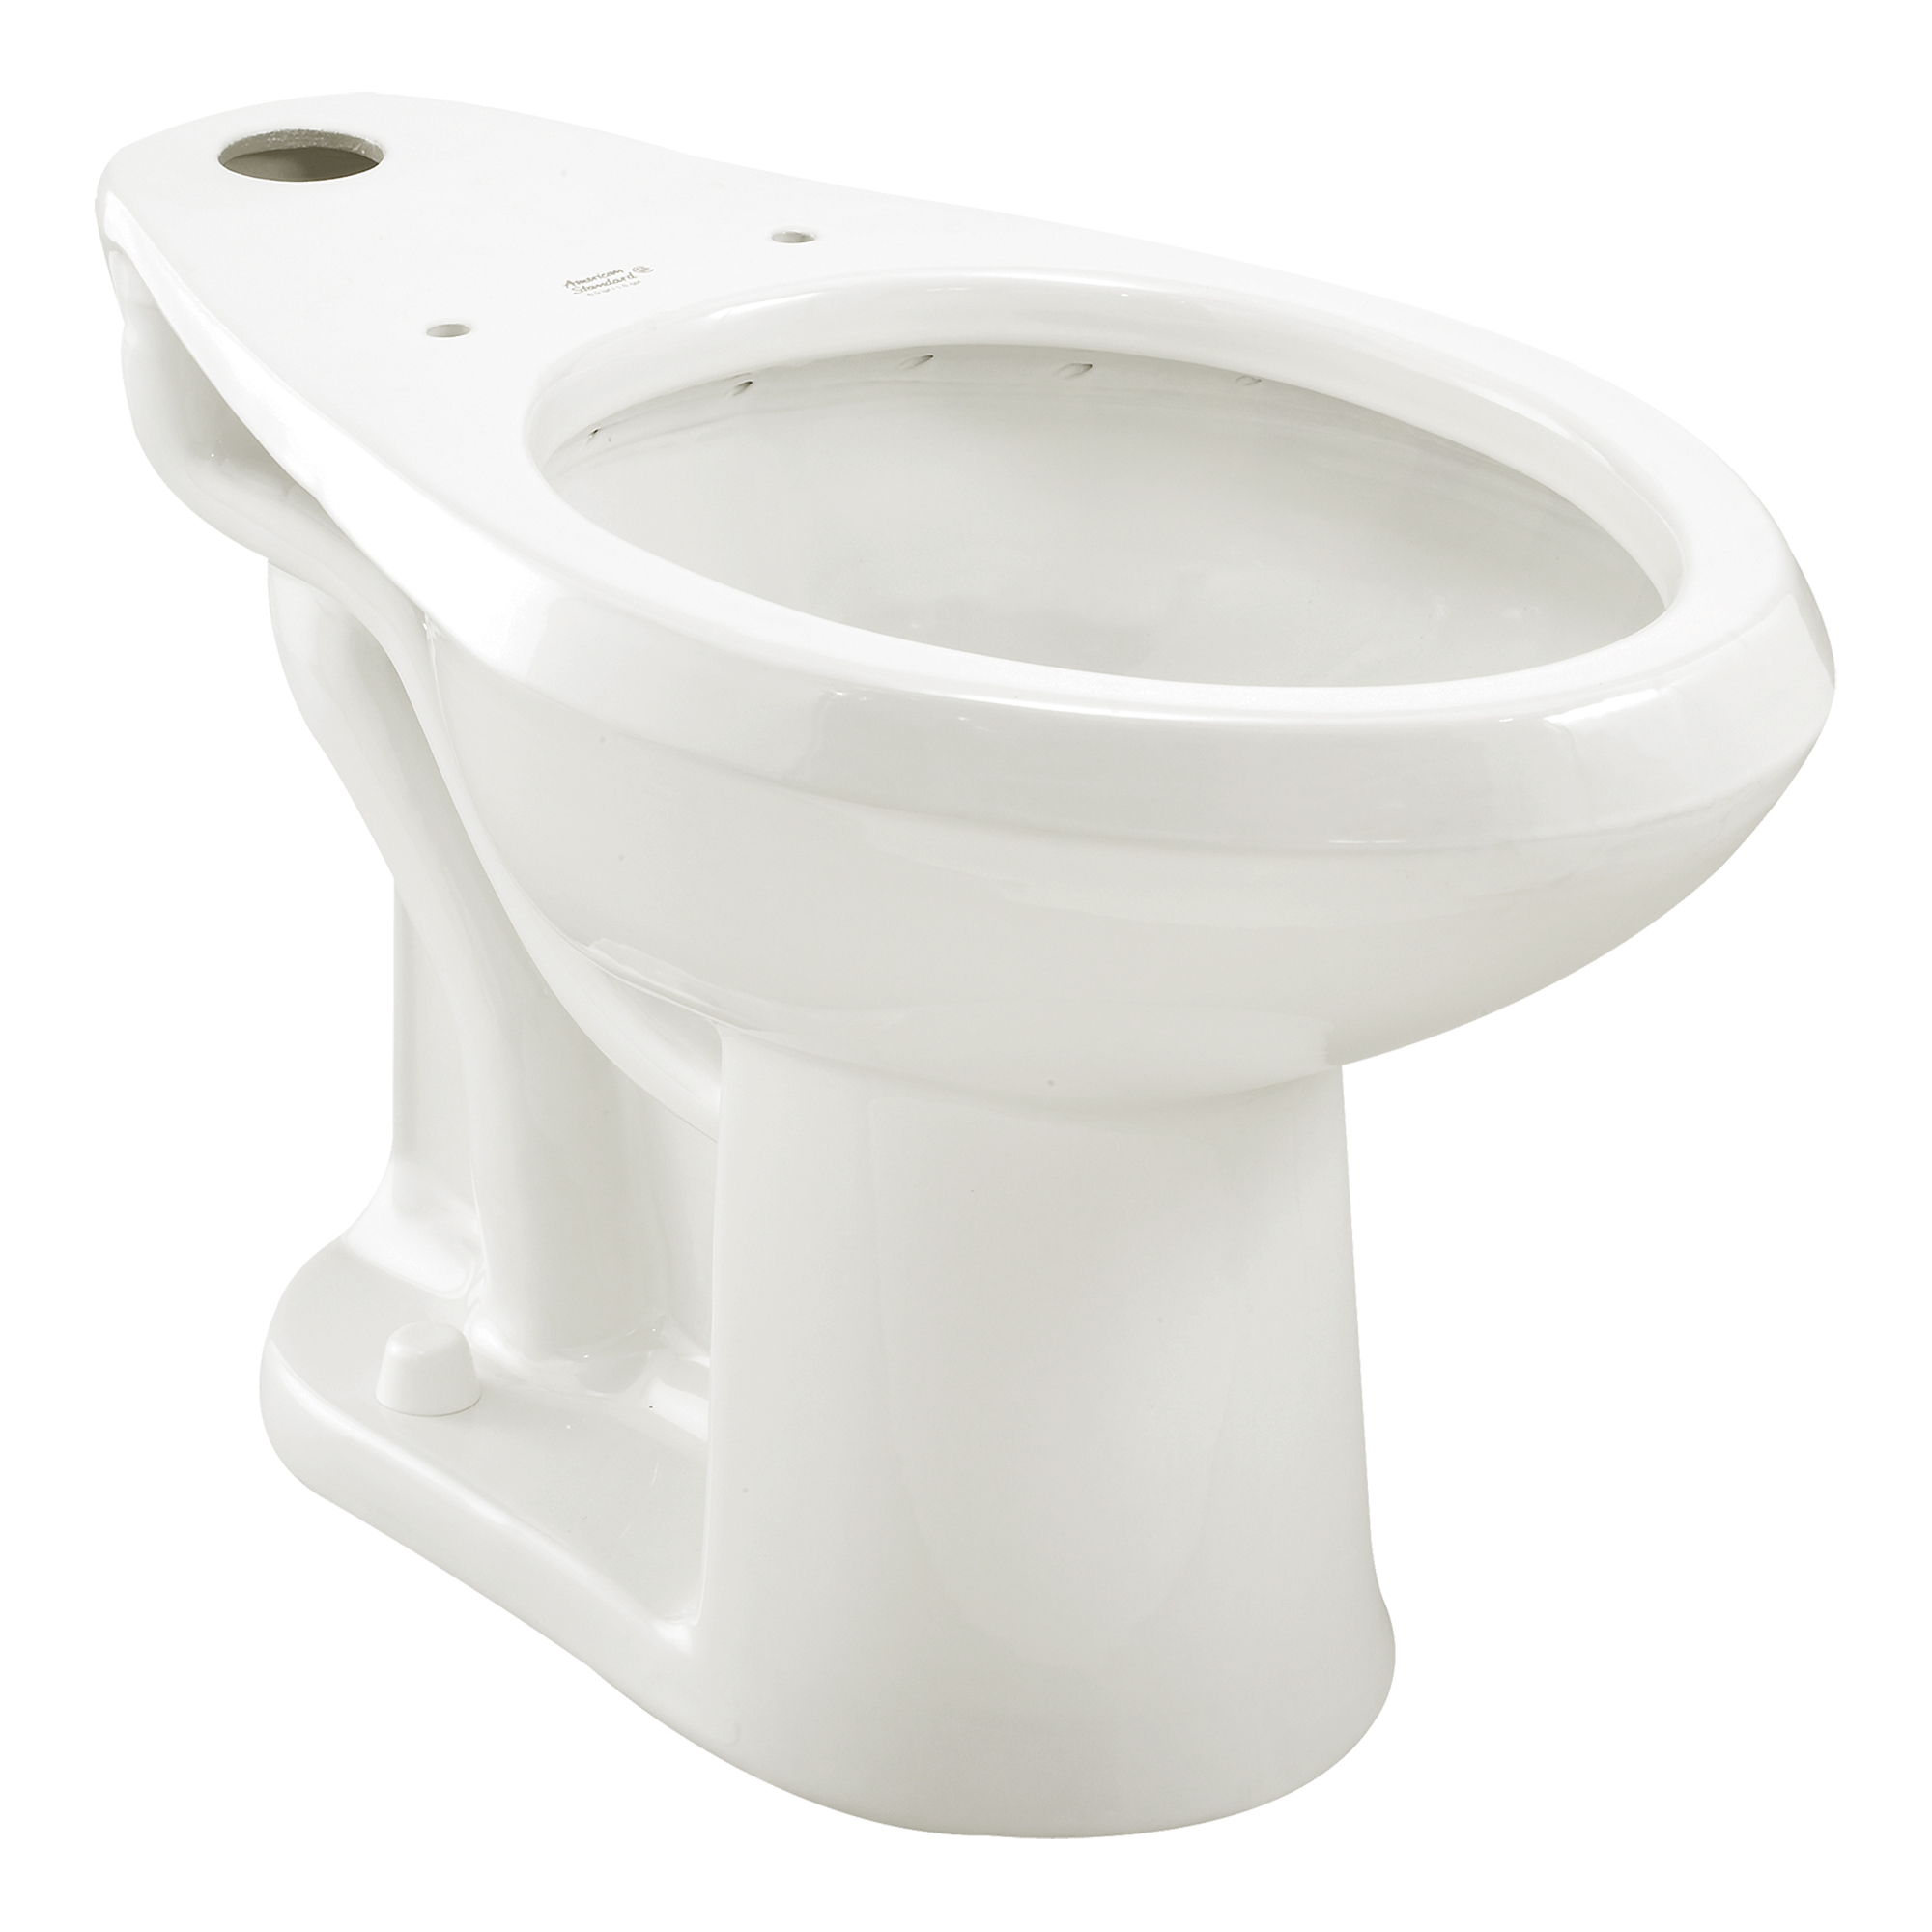 American Standard 3043.001.020 Toilet Bowl, White, Elongated, 10 or 12 in Rough-In, 16-1/2 in H Rim, 2-1/8 in Trapway, Madera™ FloWise®